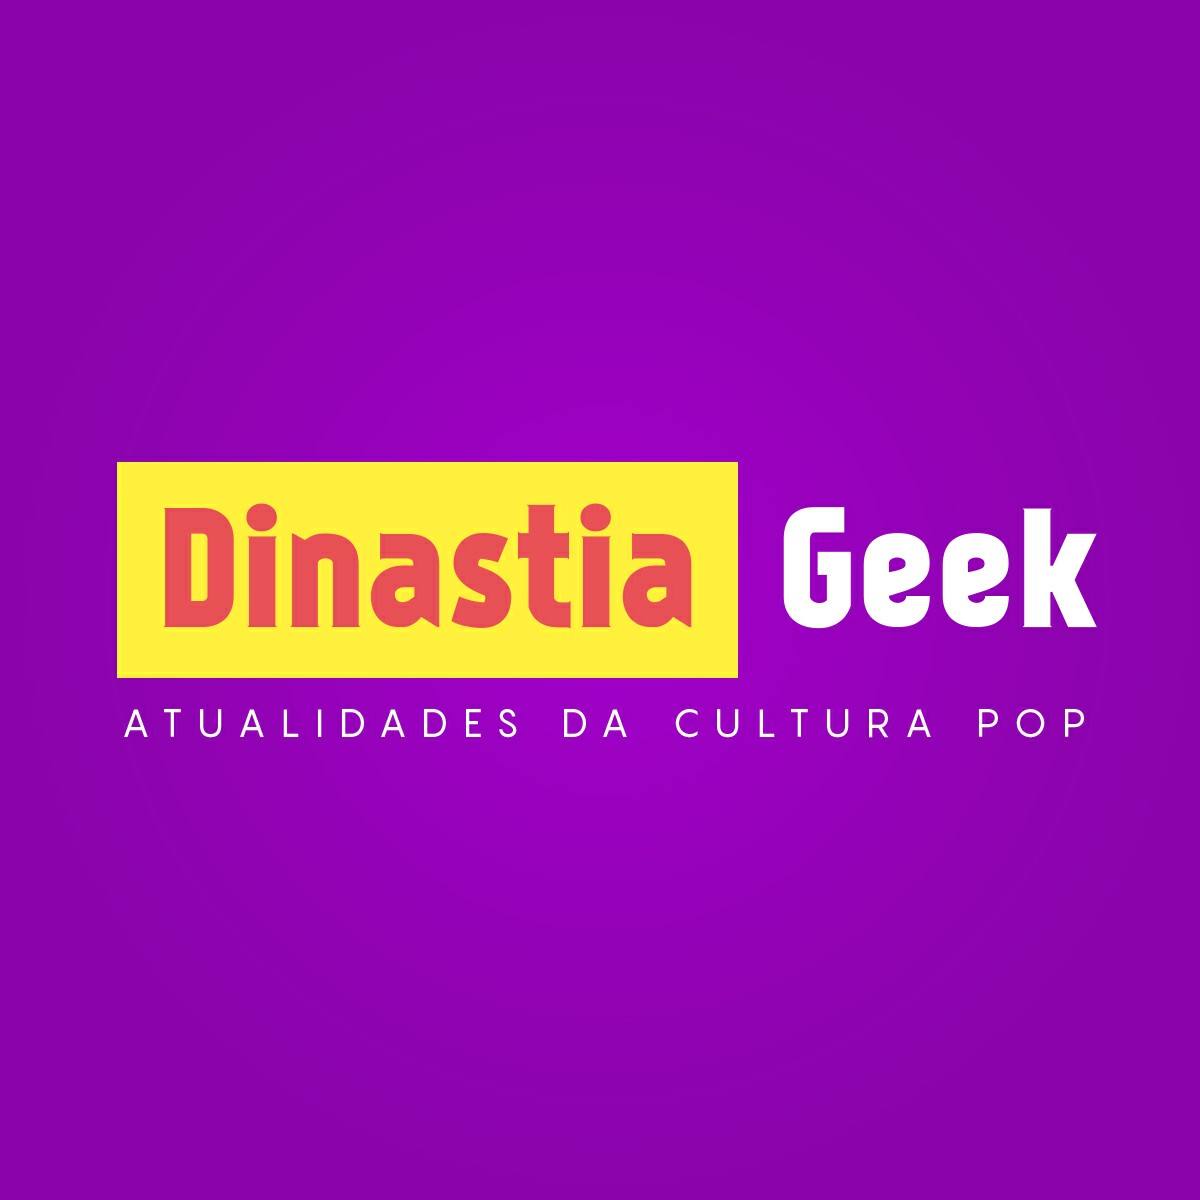 DinastiaCast - As séries mais esperadas de 2018